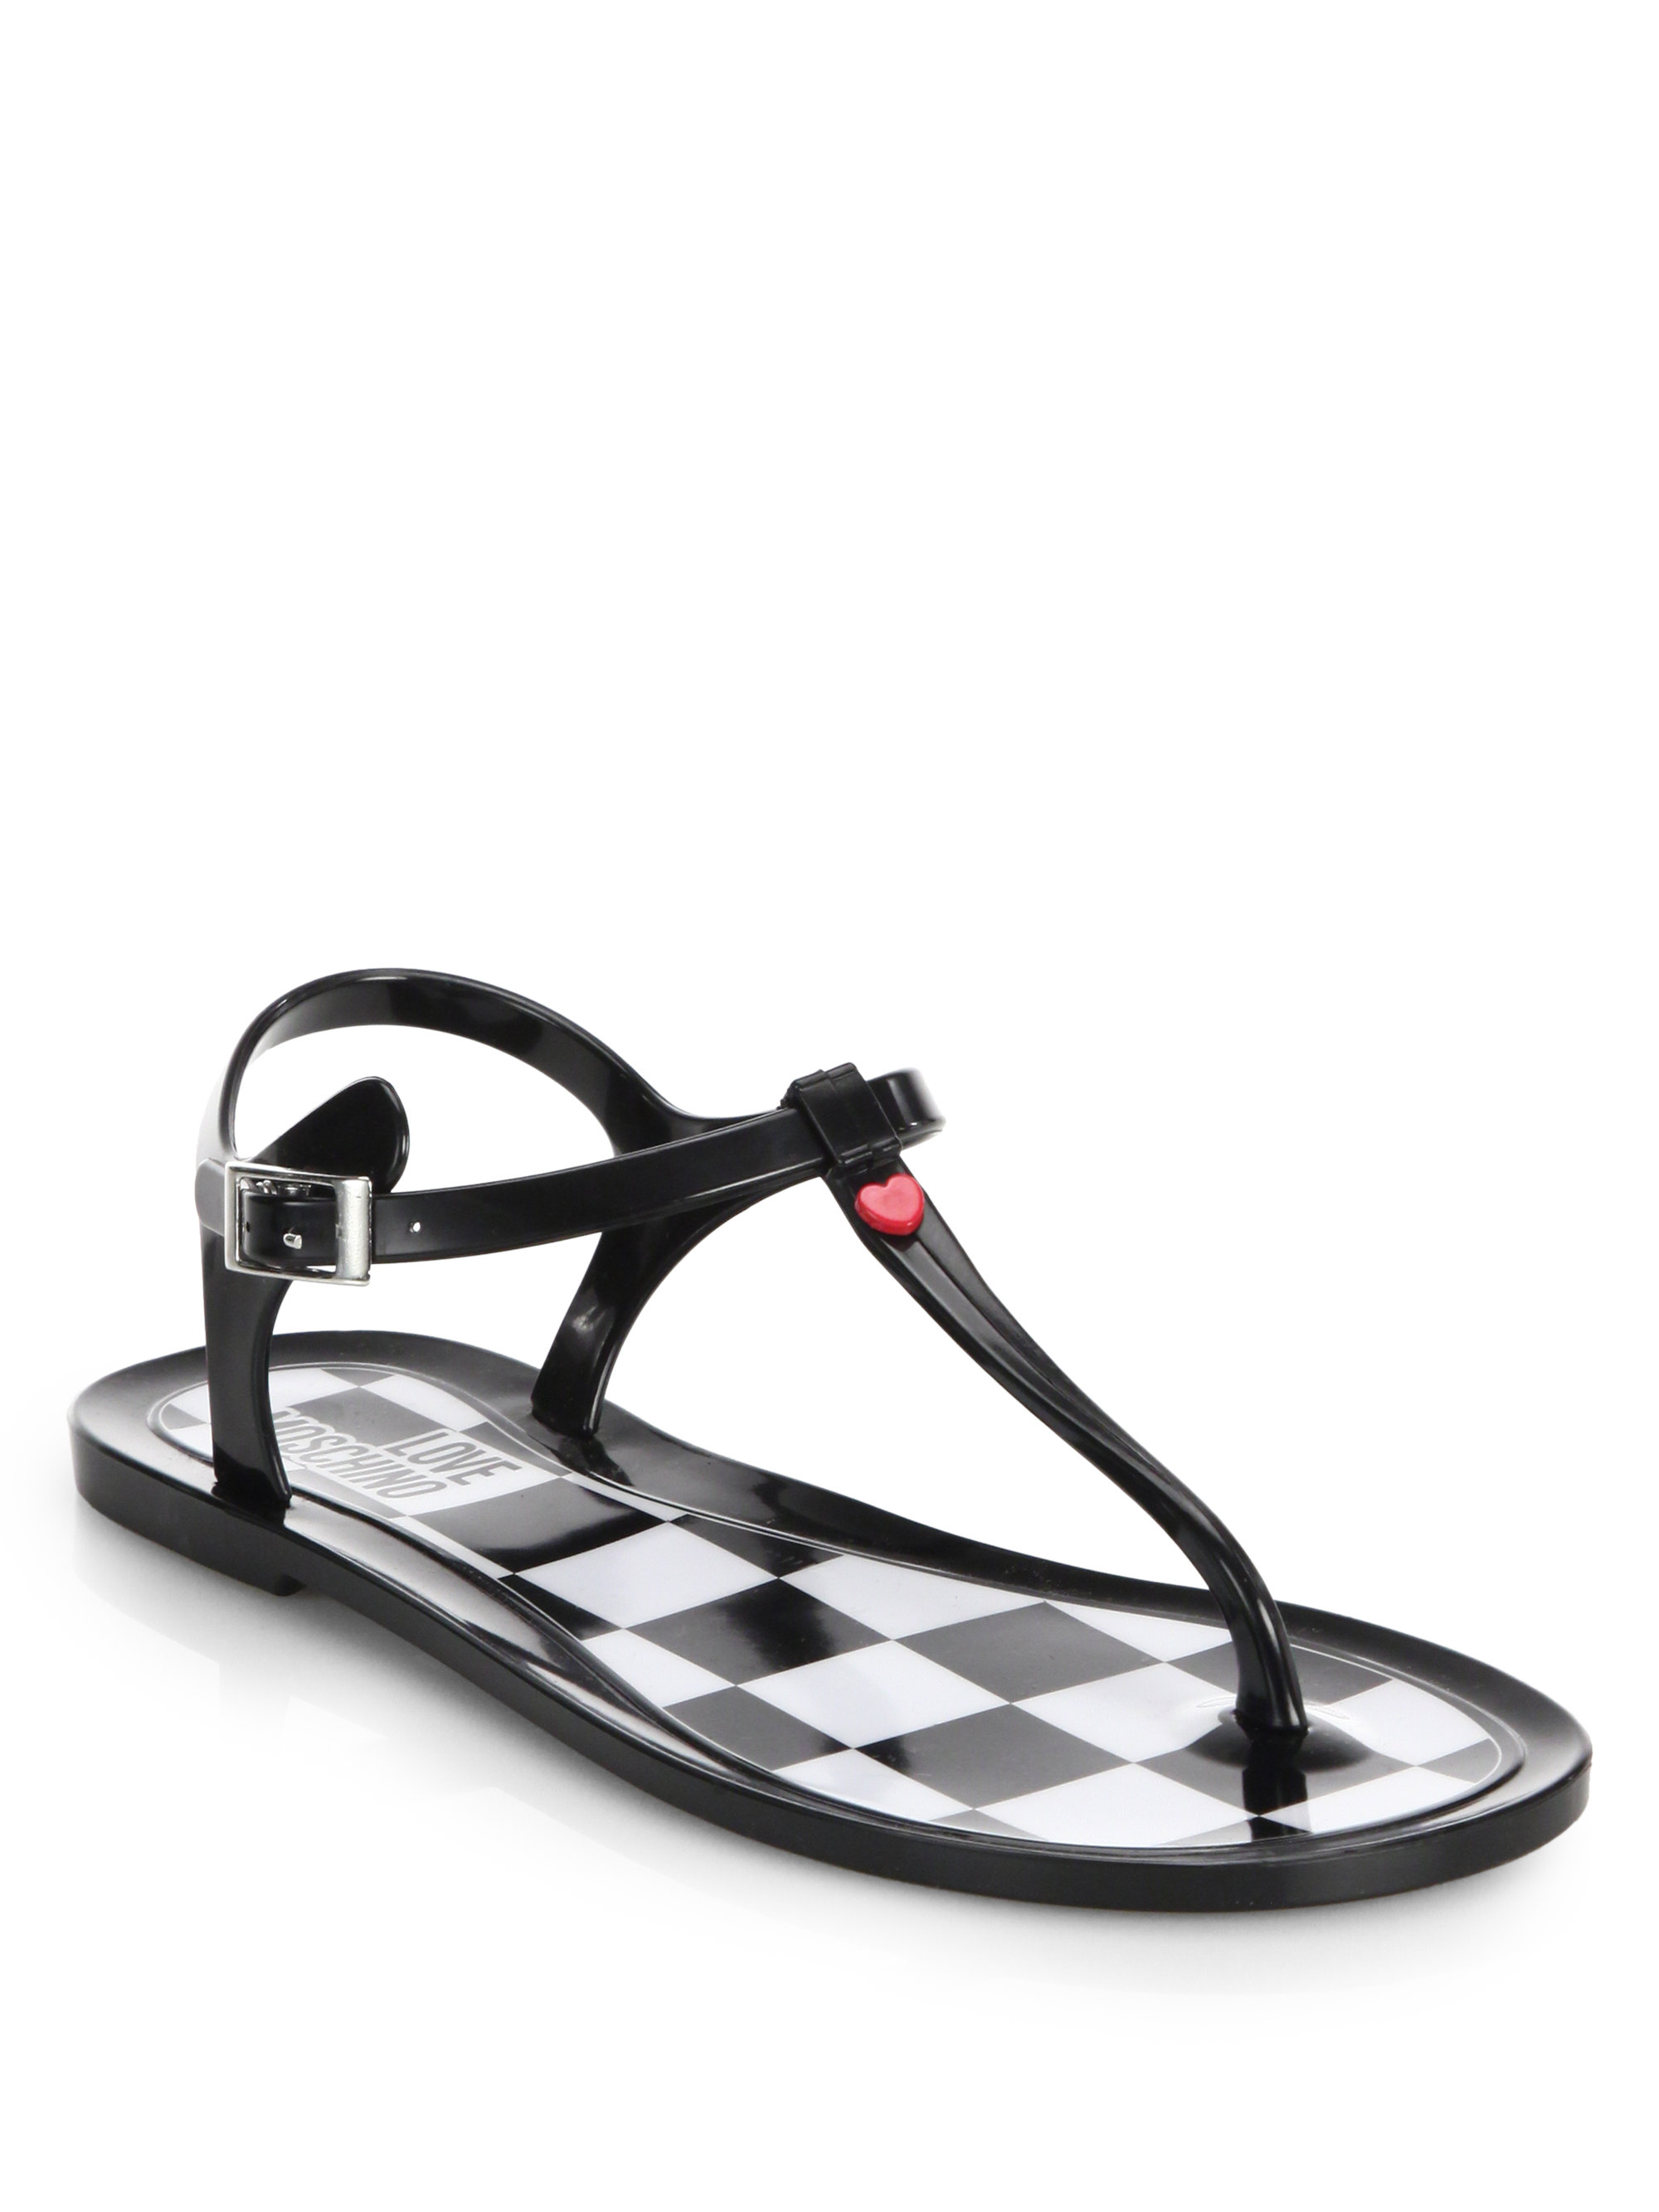 72e39b335eda Lyst - Love Moschino Jelly Thong Sandals in Black